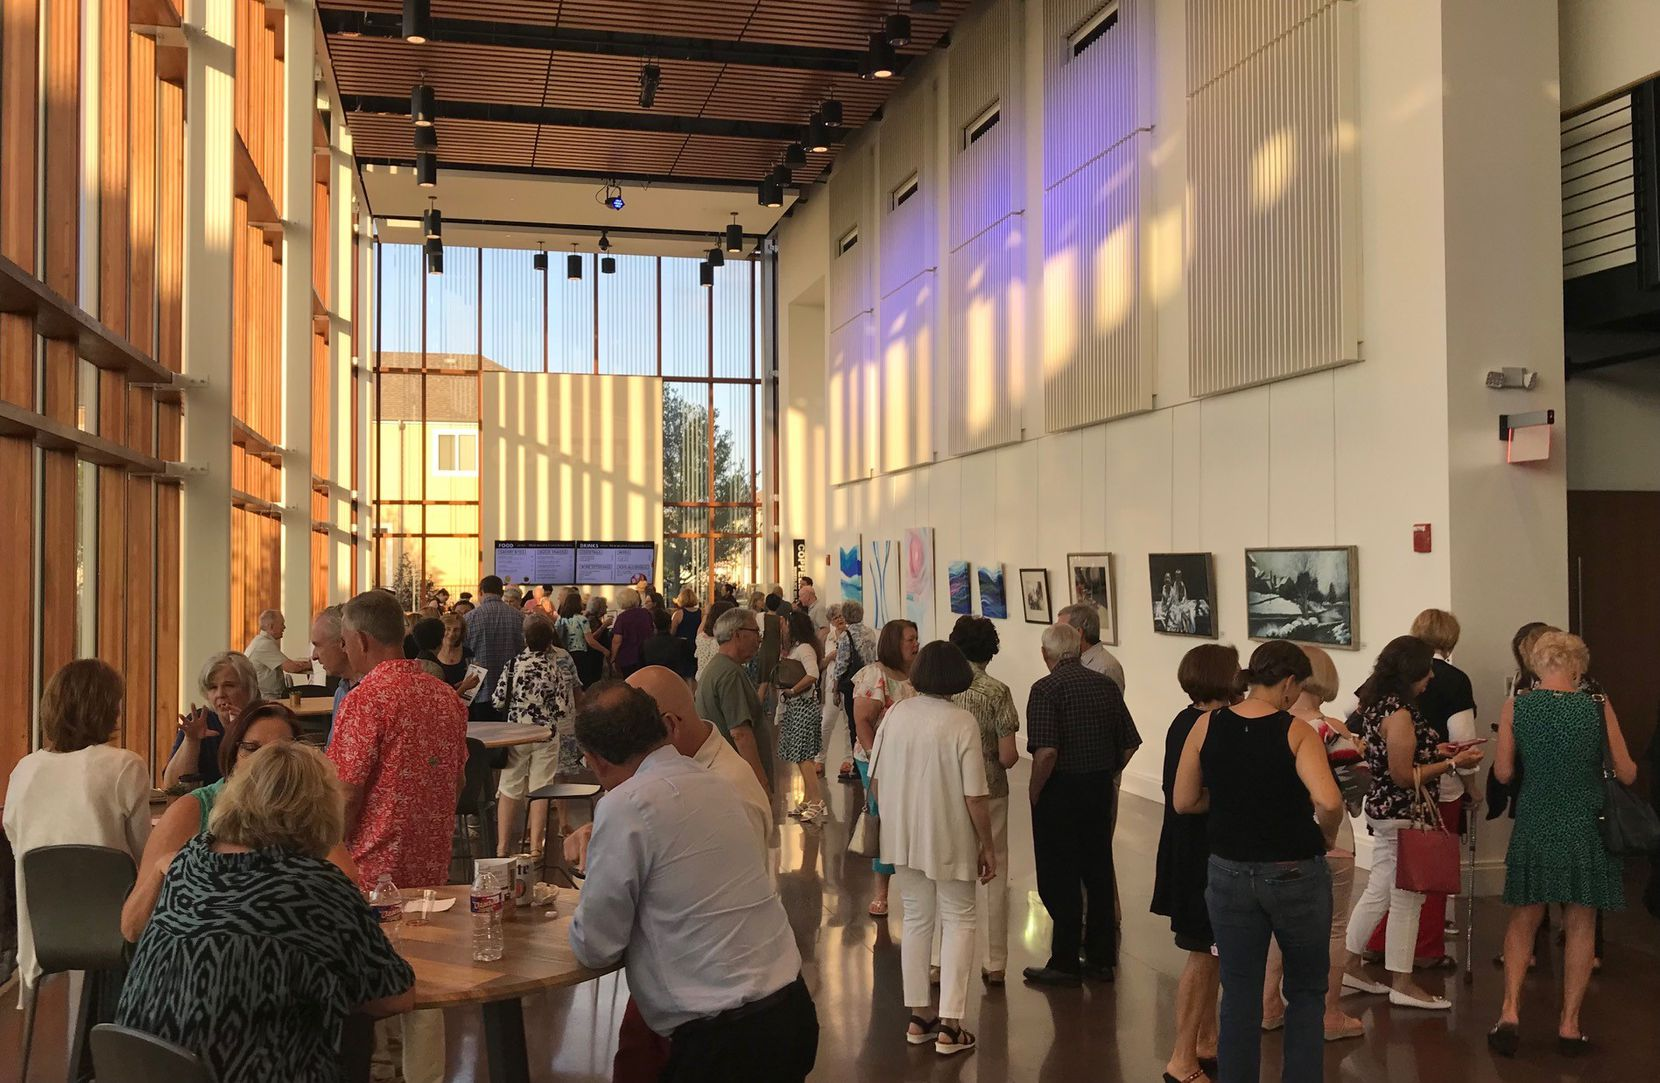 The center held an invitation-only event on June 30 that featured the band the Bodarks. The Mr. Cooper art gallery is part of the Coppell Arts Center lobby.